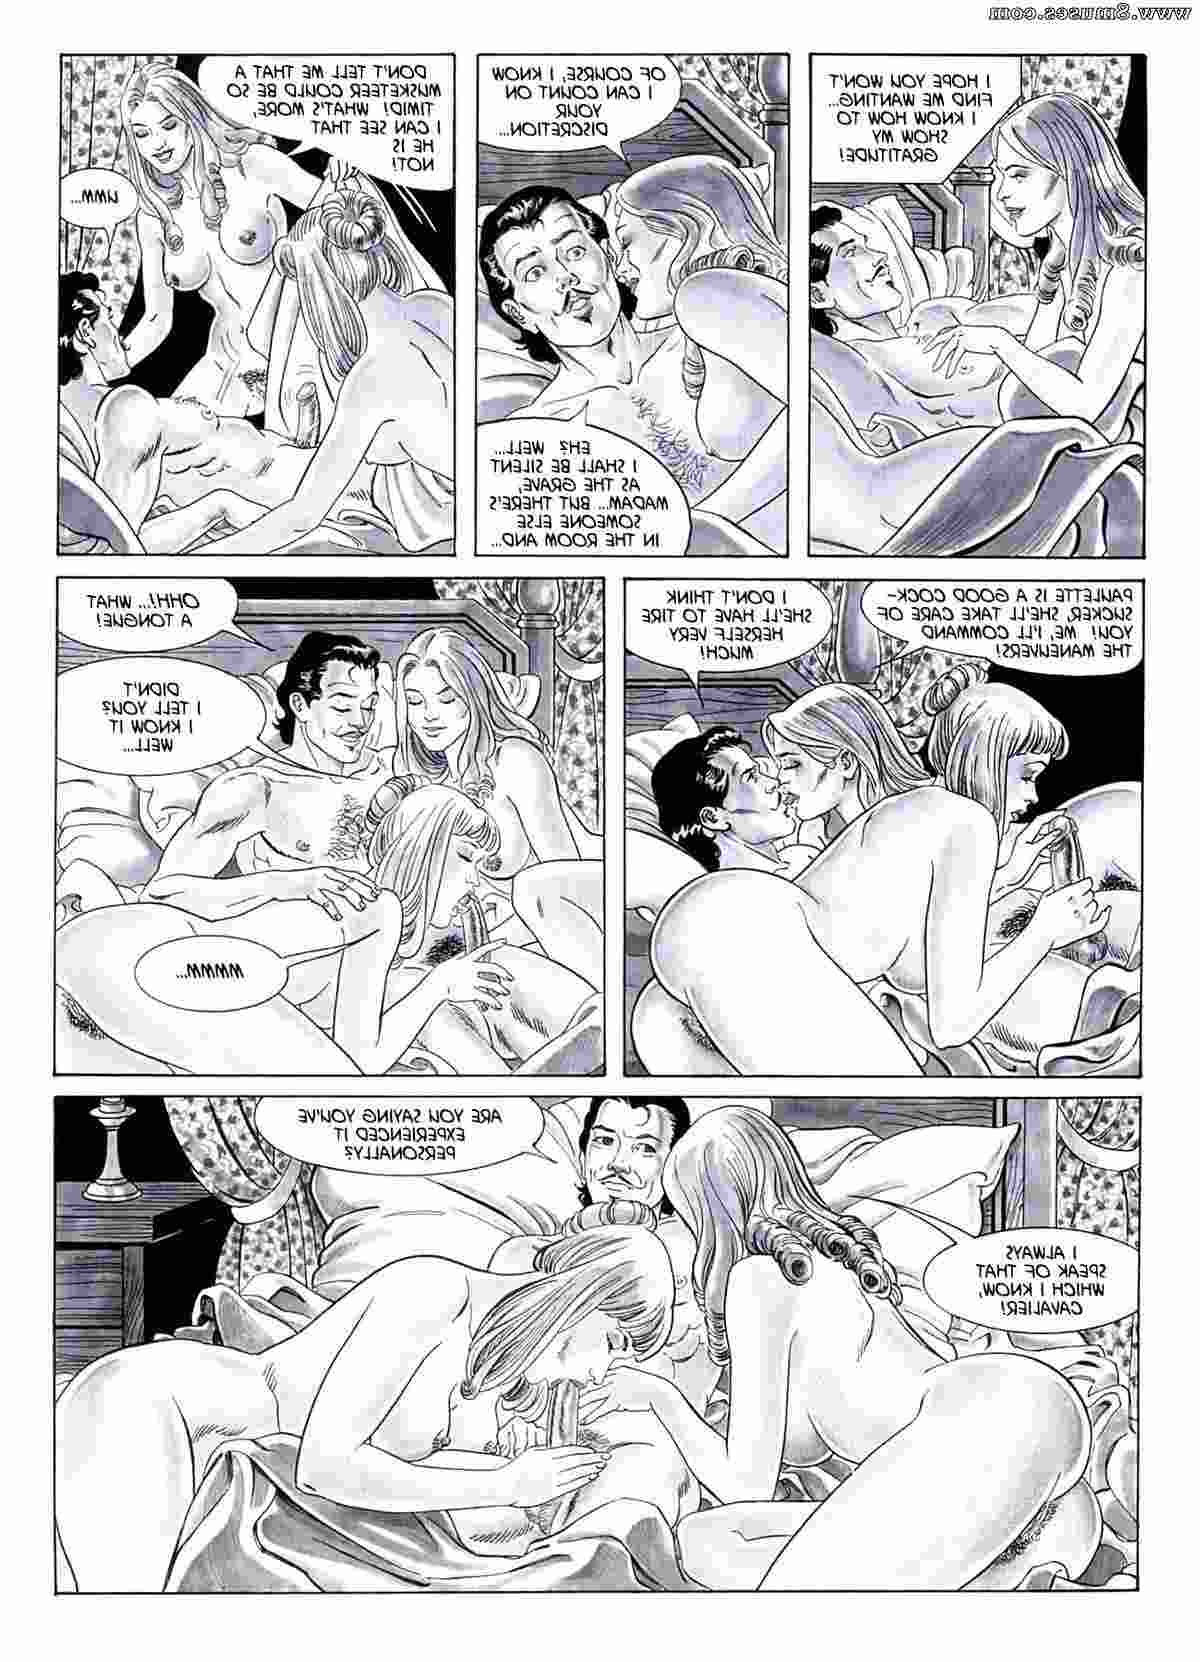 Stramaglia-Morale-Comics/Impetuous-Amber Impetuous_Amber__8muses_-_Sex_and_Porn_Comics_11.jpg